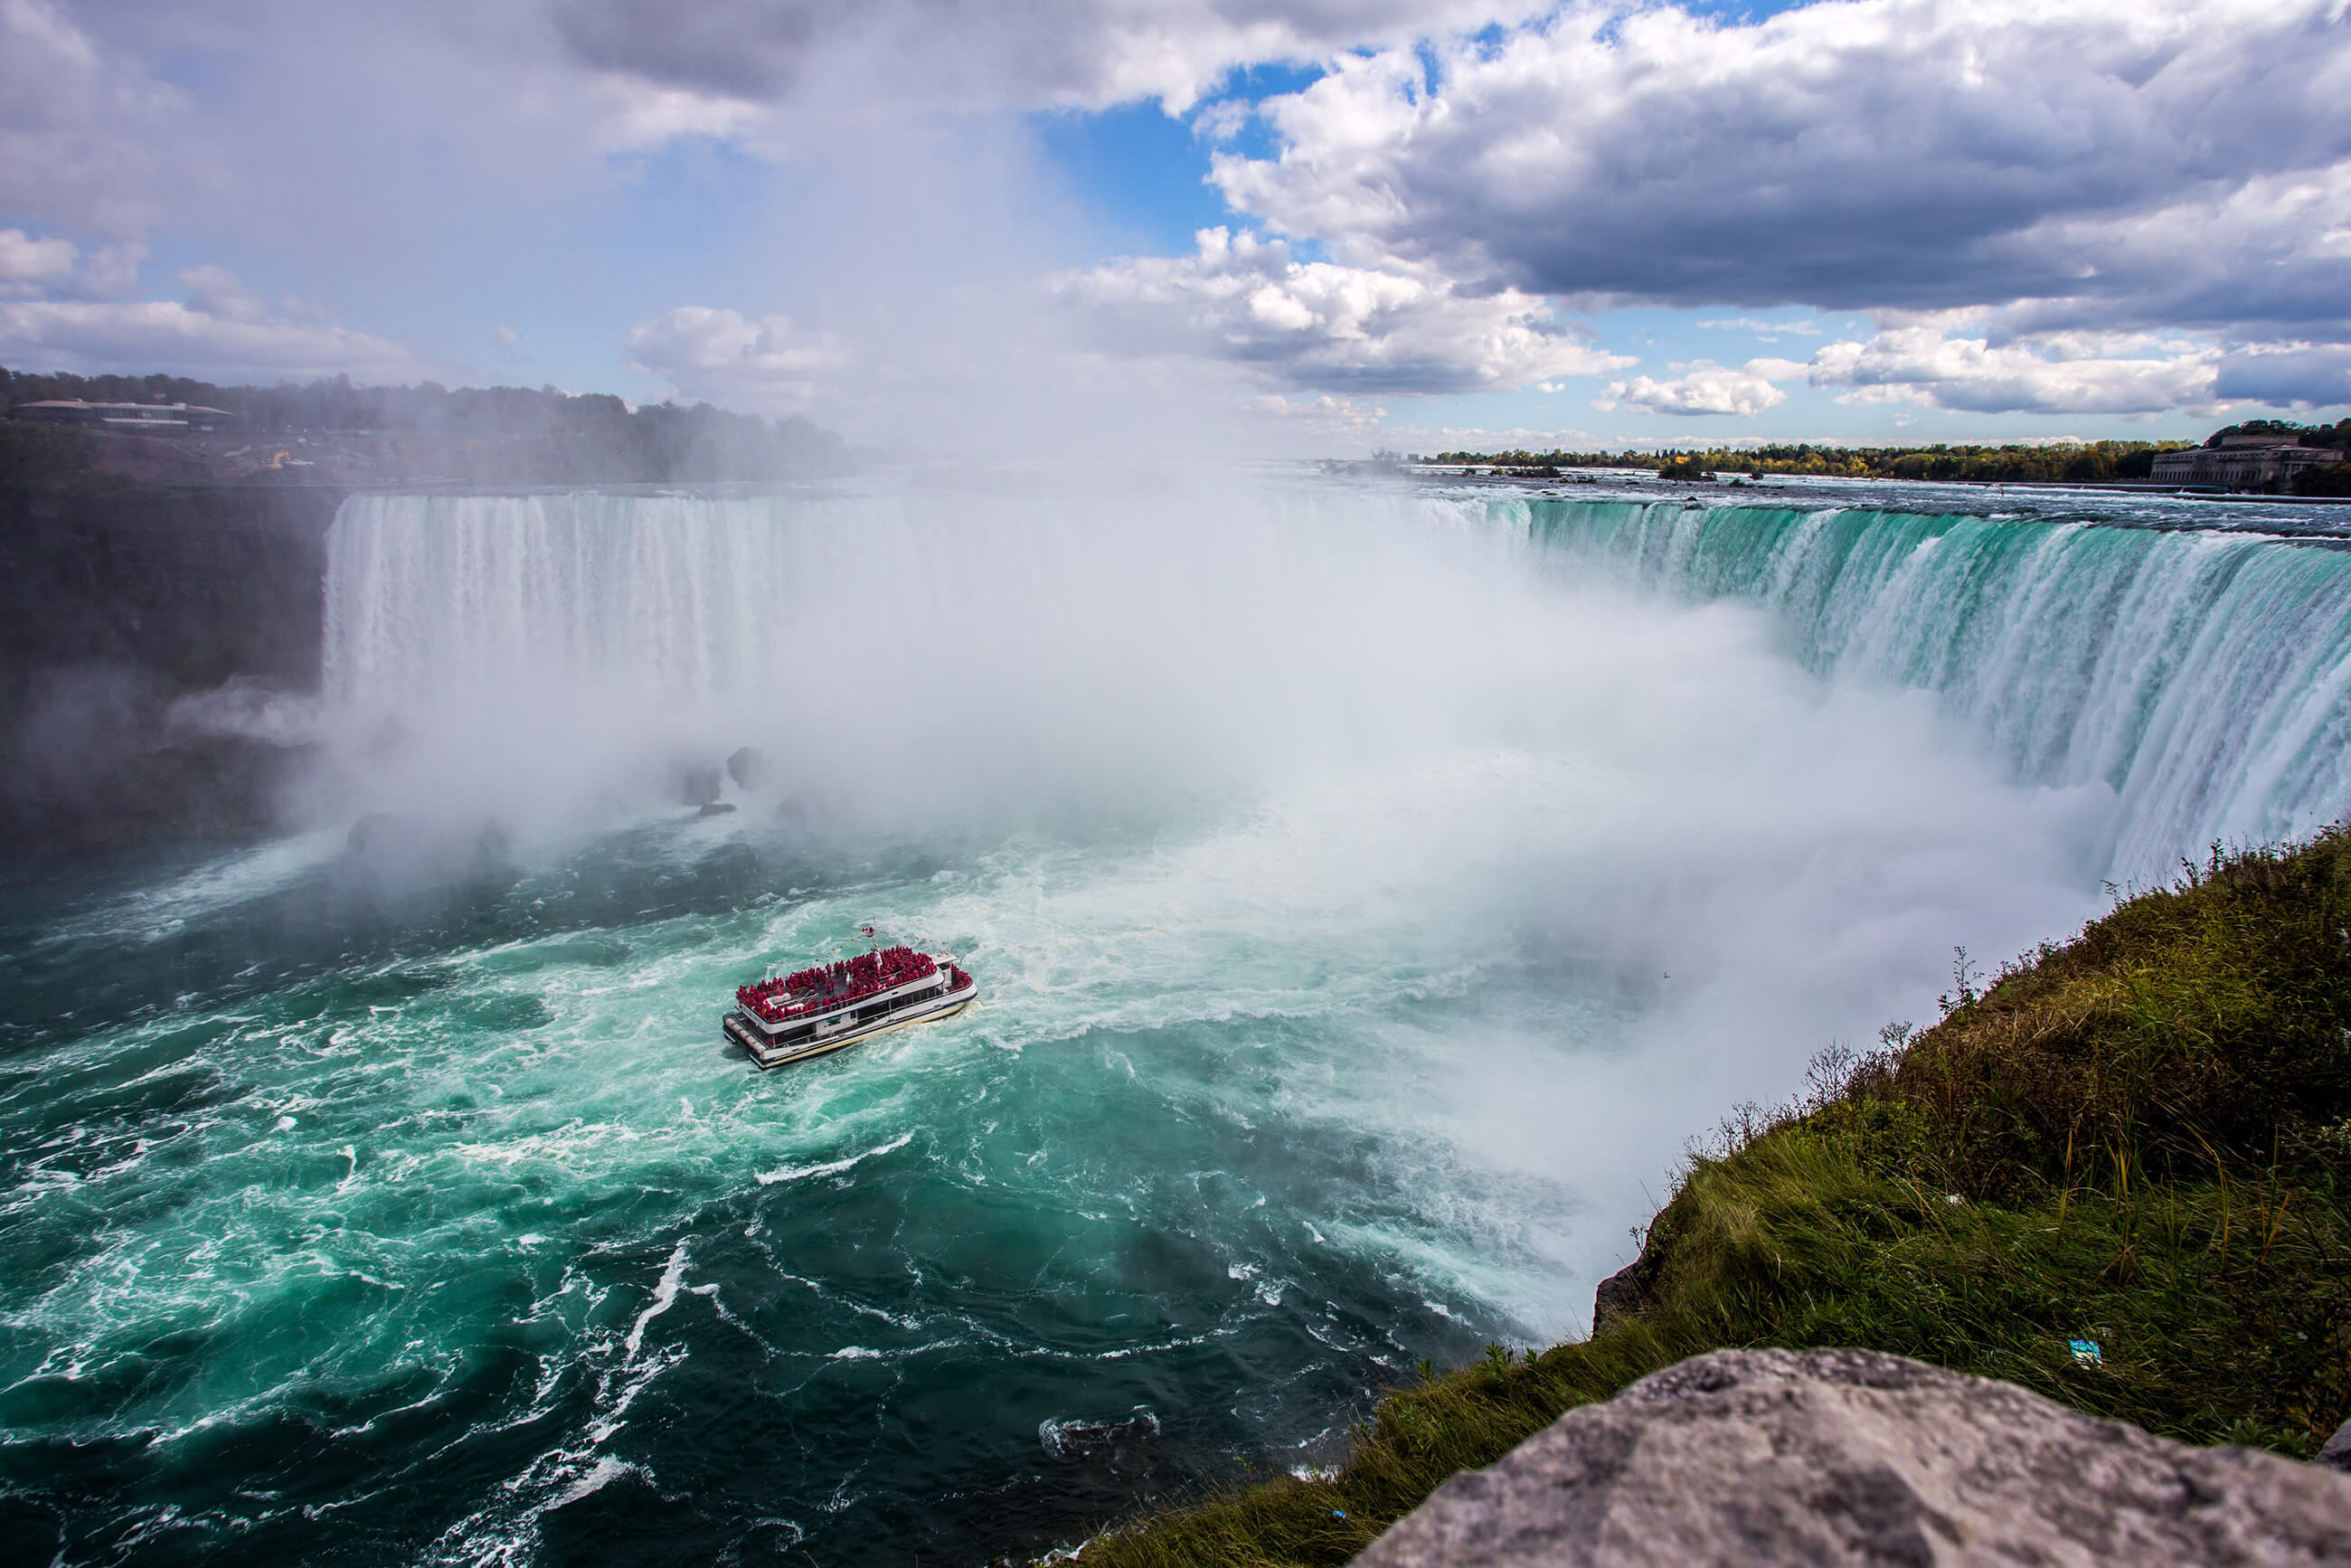 https://bubo.sk/uploads/galleries/16270/kanada_niagara_boat-1834837.jpg